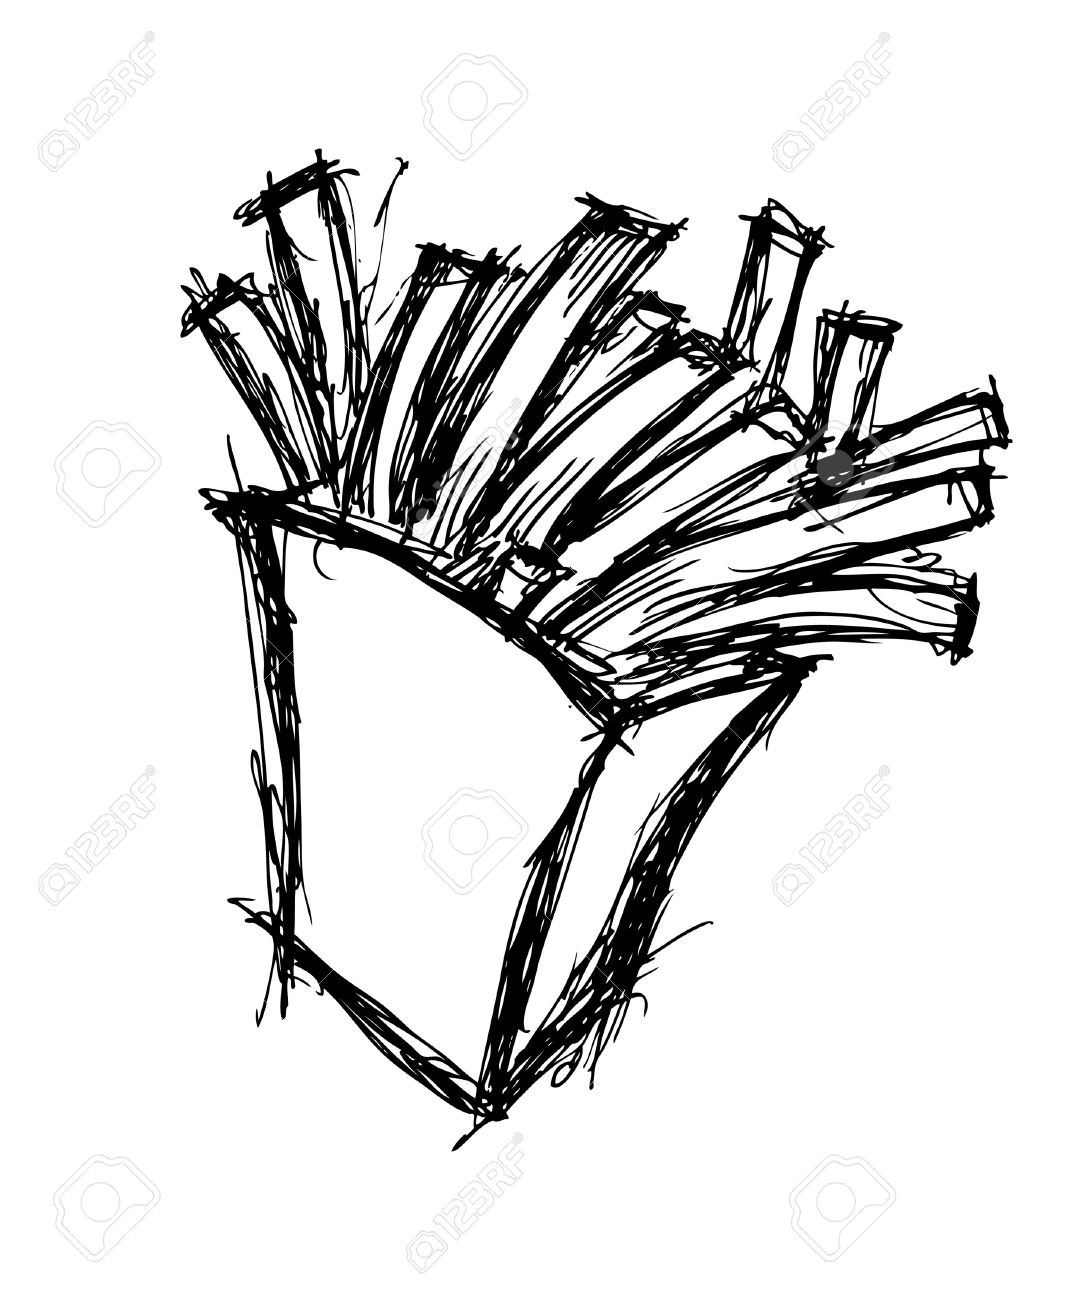 French Fries Drawing at GetDrawings.com | Free for personal use ...